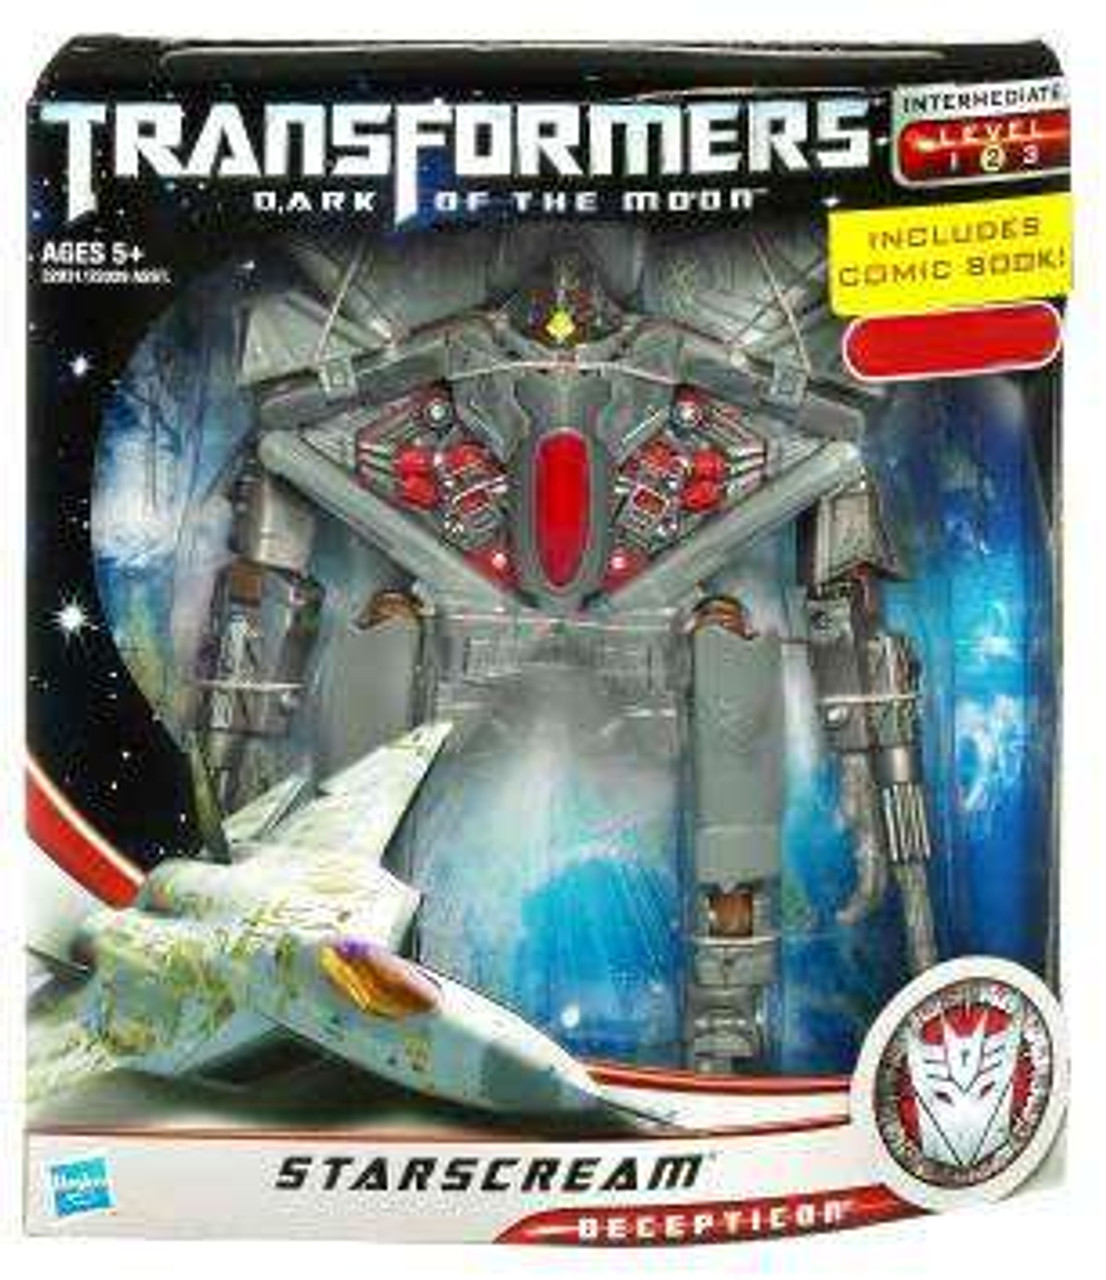 Transformers Dark of the Moon Exclusives Voyager Starscream Exclusive Voyager Action Figure